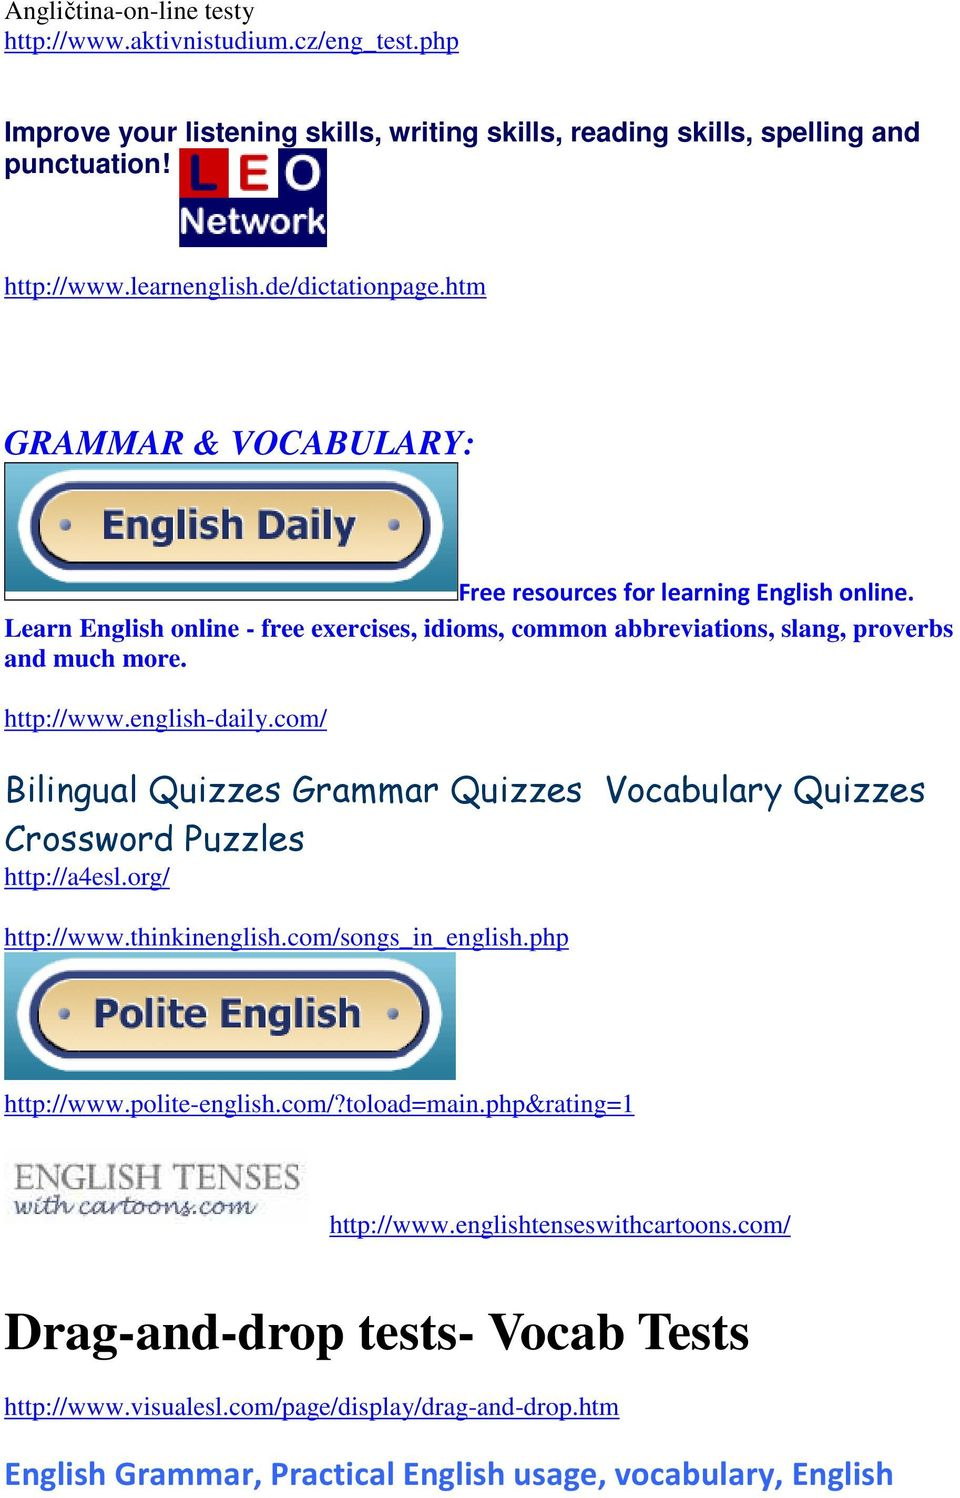 com/ Bilingual Quizzes Grammar Quizzes Vocabulary Quizzes Crossword Puzzles http://a4esl.org/ http://www.thinkinenglish.com/songs_in_english.php http://www.polite-english.com/?toload=main.